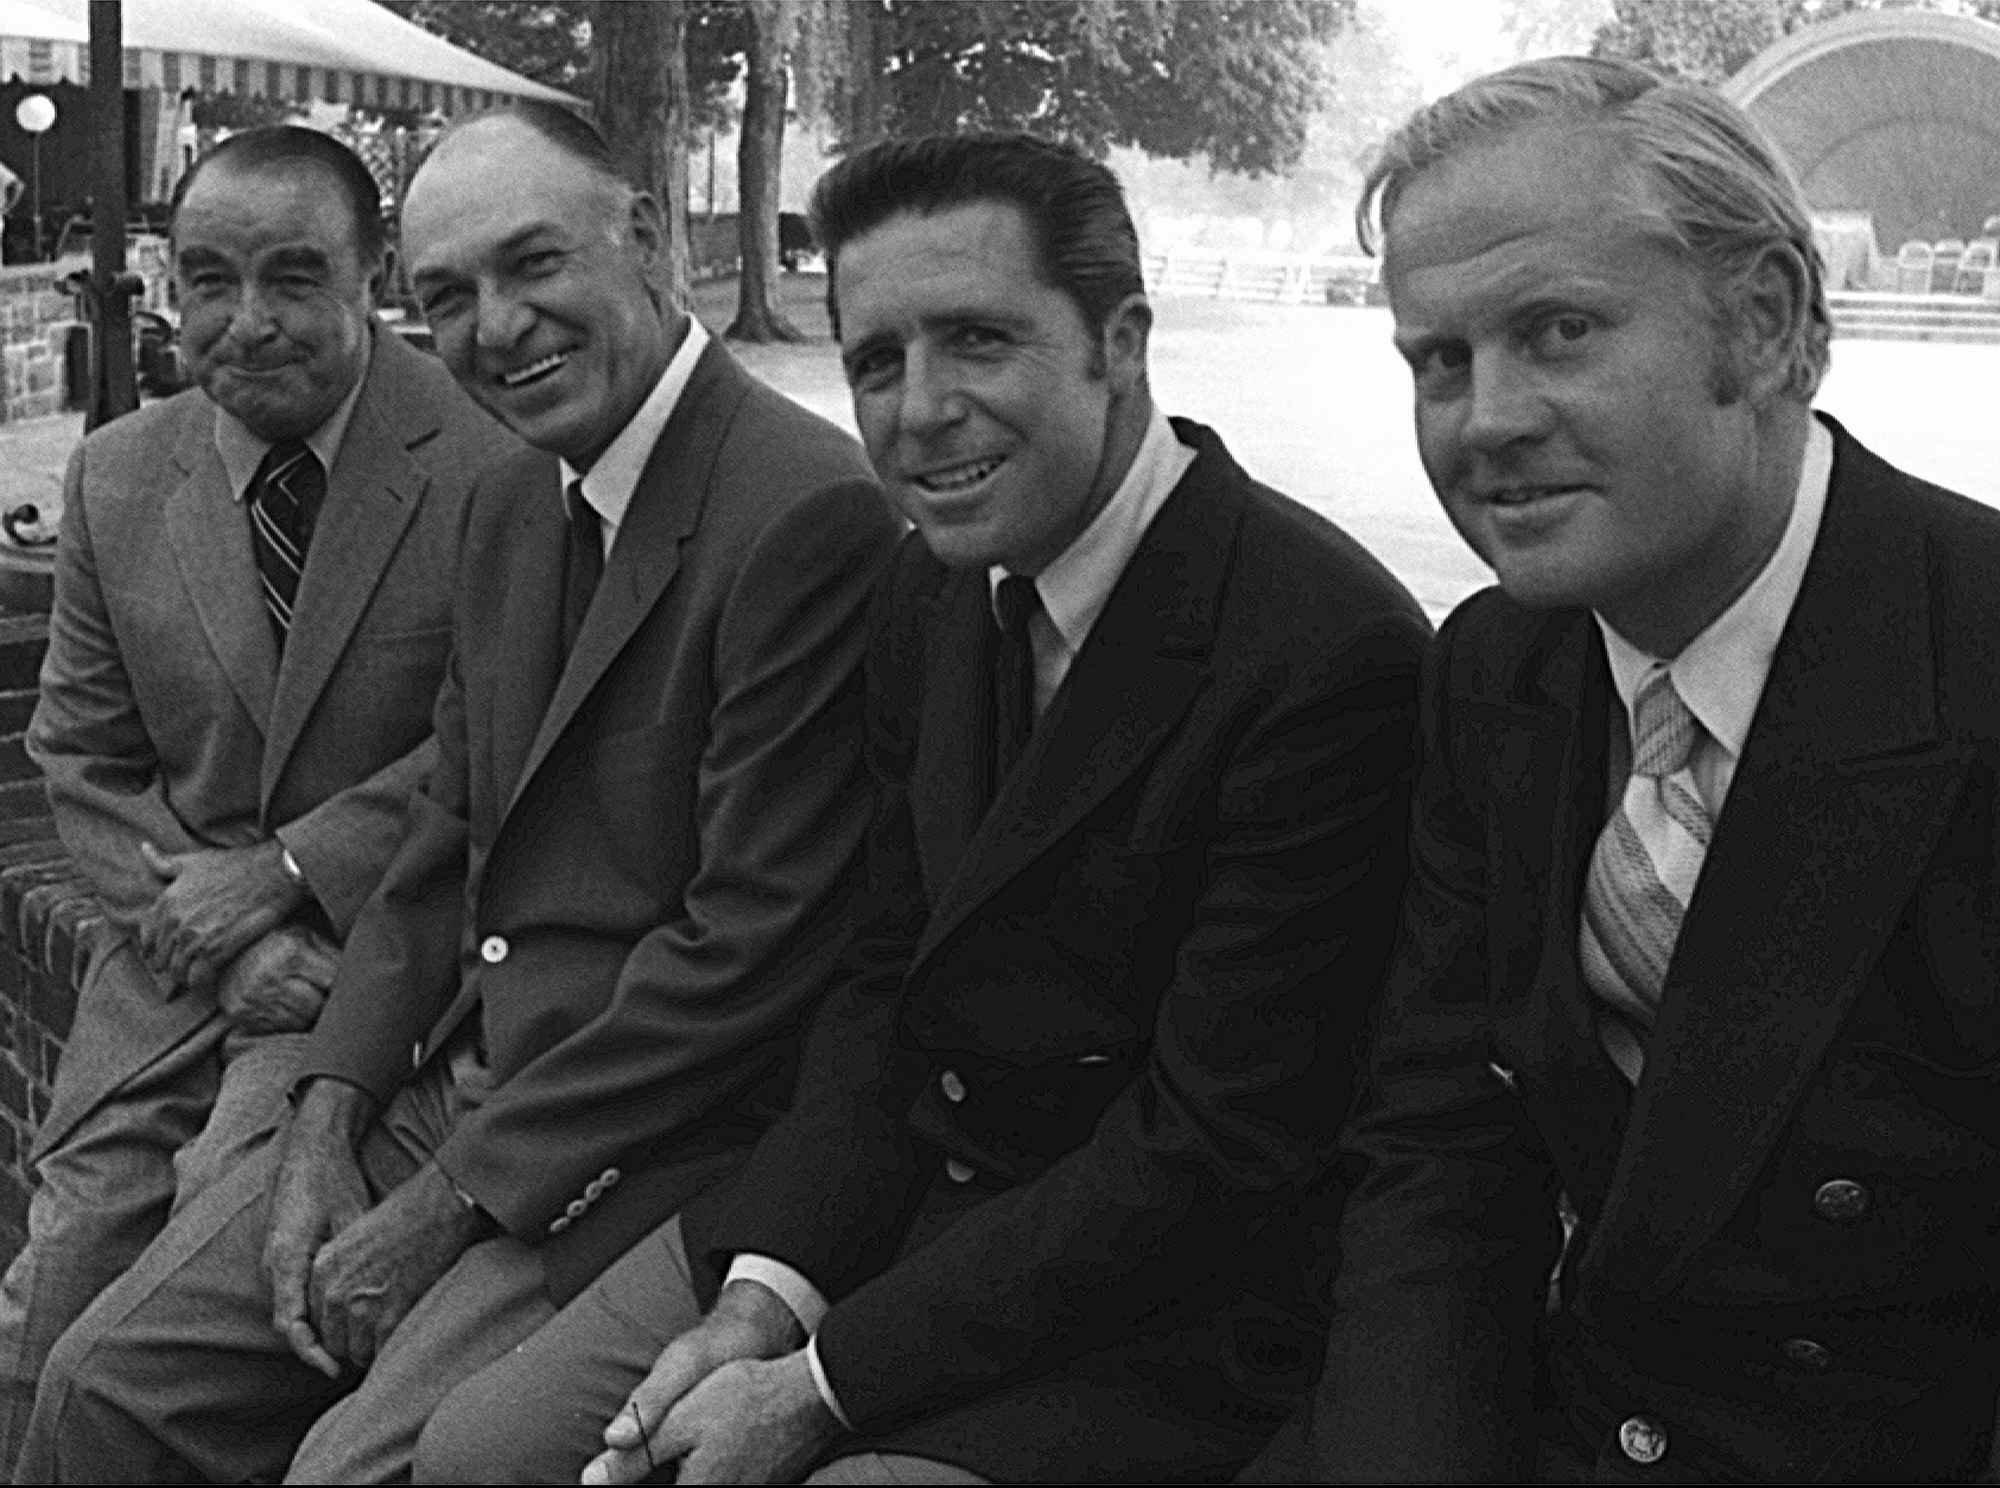 Golfer Ben Hogan, second from left, poses with three other Grand Slam winners at the Westchester Country Club in Harrison, N.Y., July 28, 1970. From left to right, are: Gene Sarazen, Hogan, Gary Player and Jack Nicklaus.